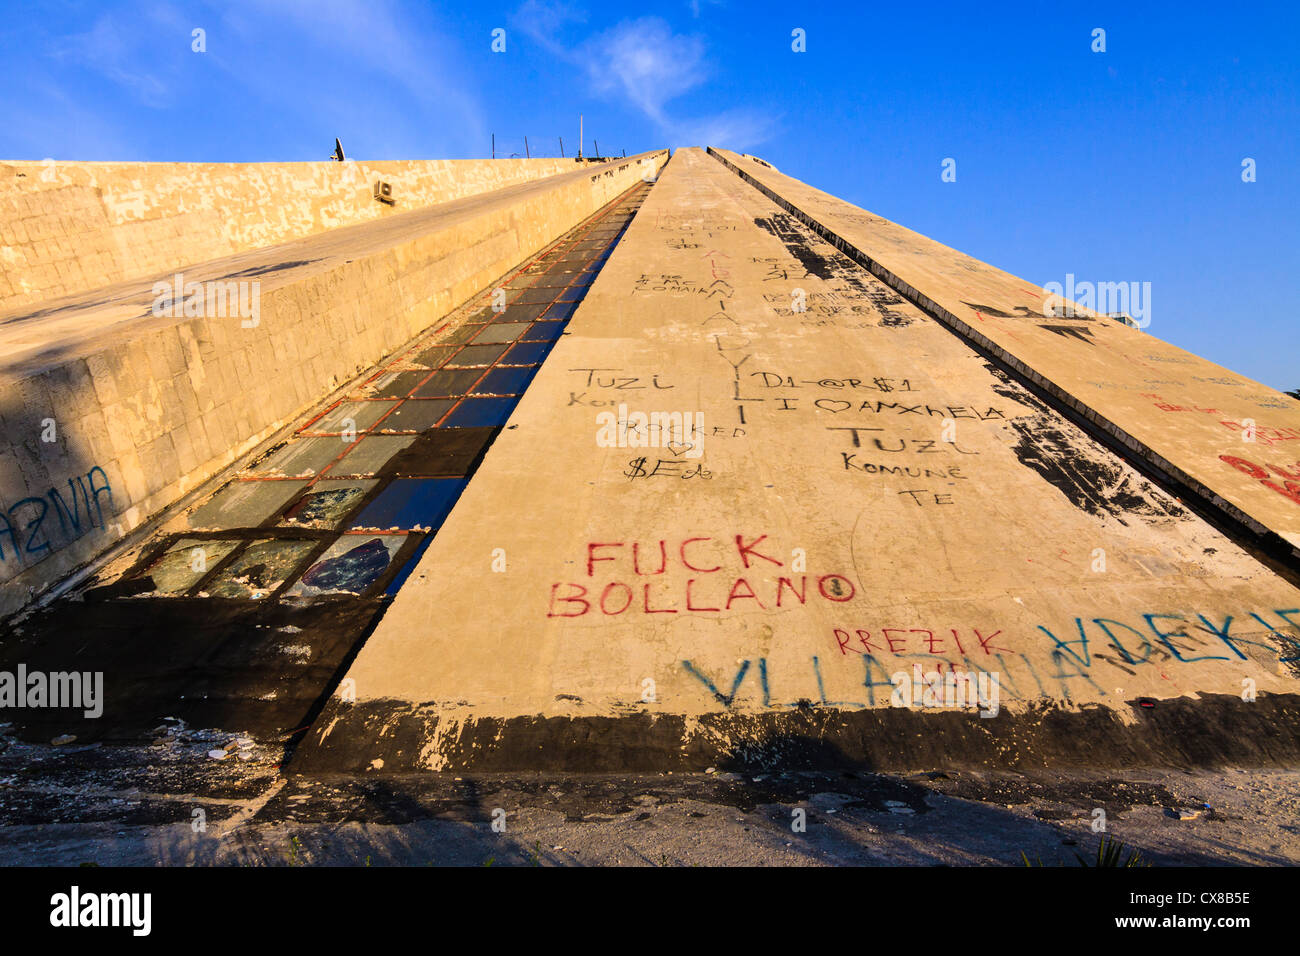 Graffitis covering the Pyramid, the former International Center of Culture known also as the Enver Hoxha museum. - Stock Image